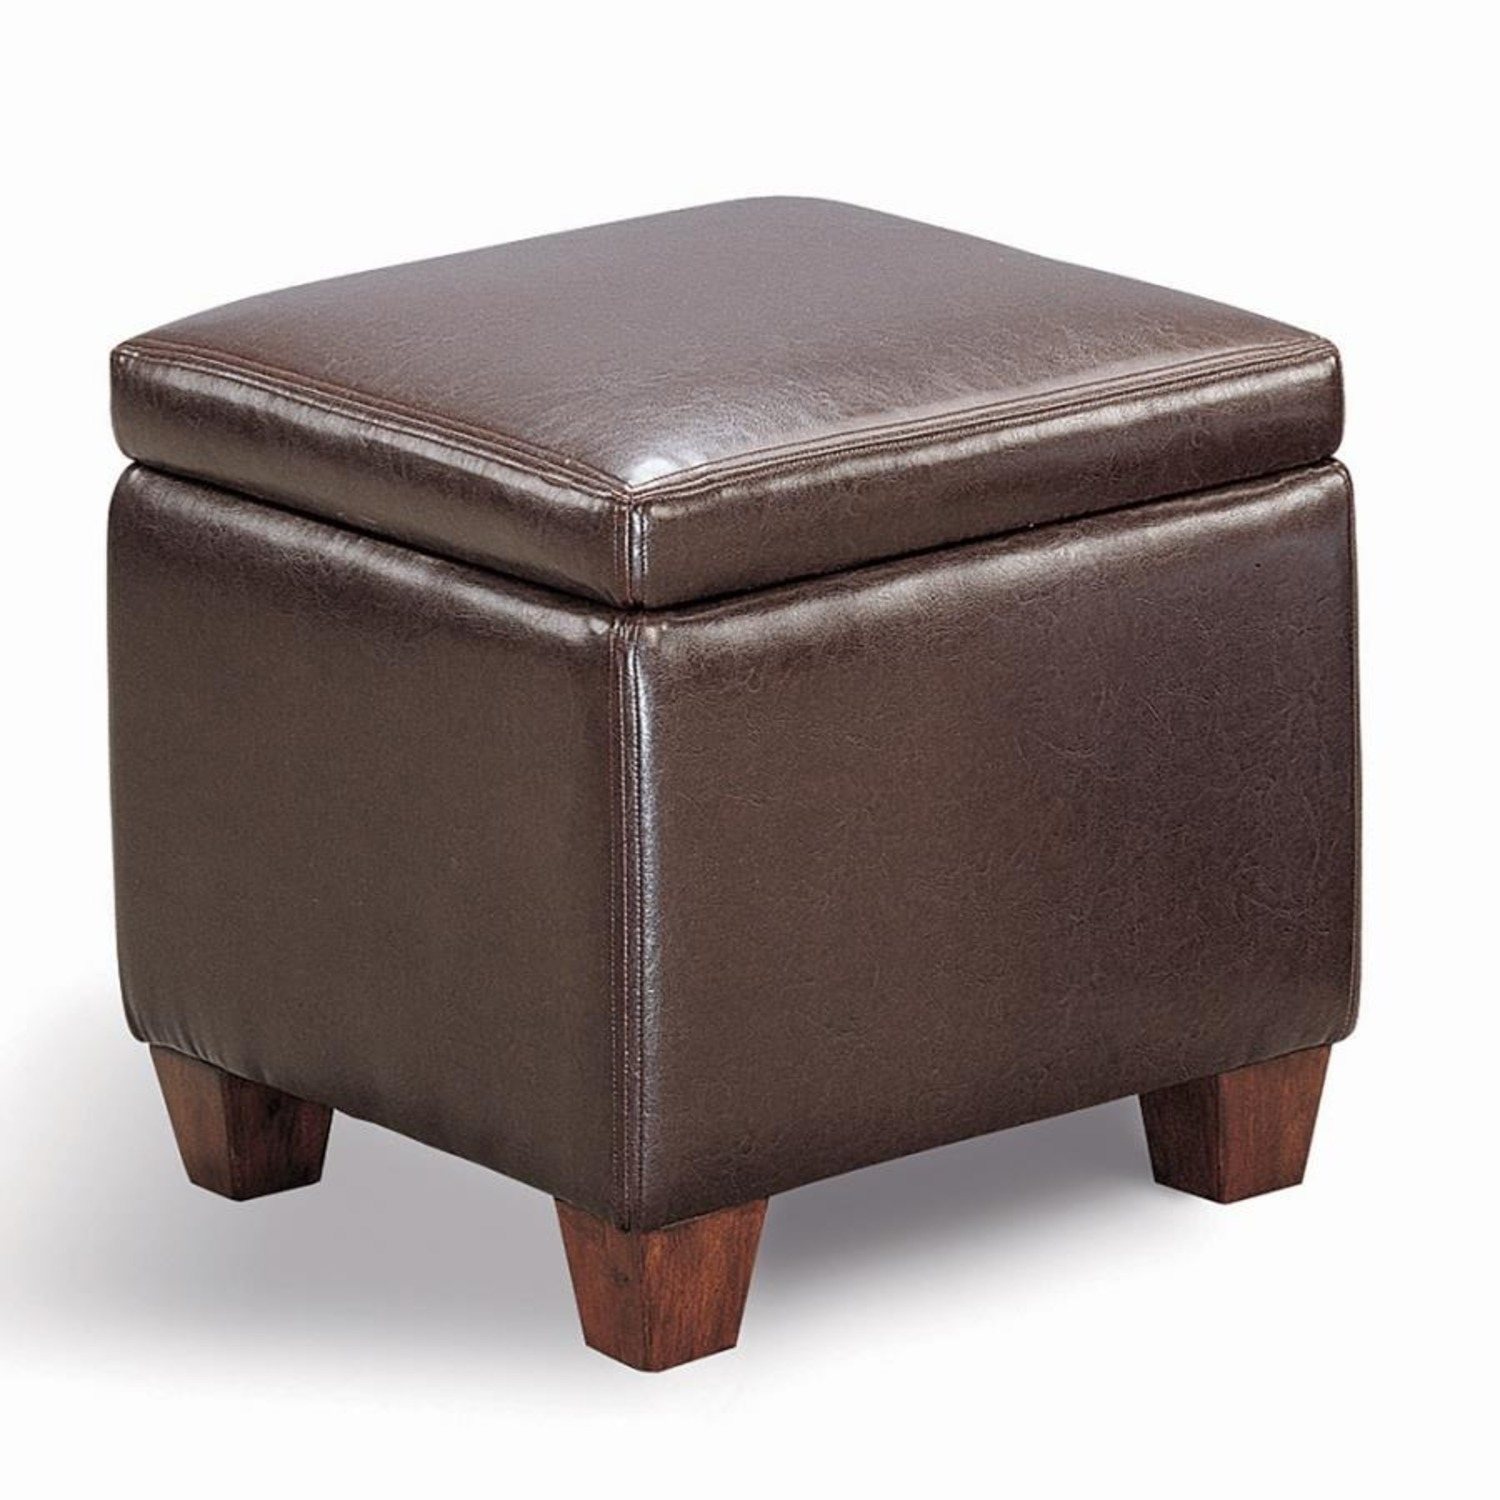 Ottoman In Cube-Shaped Dark Brown Finish - image-1